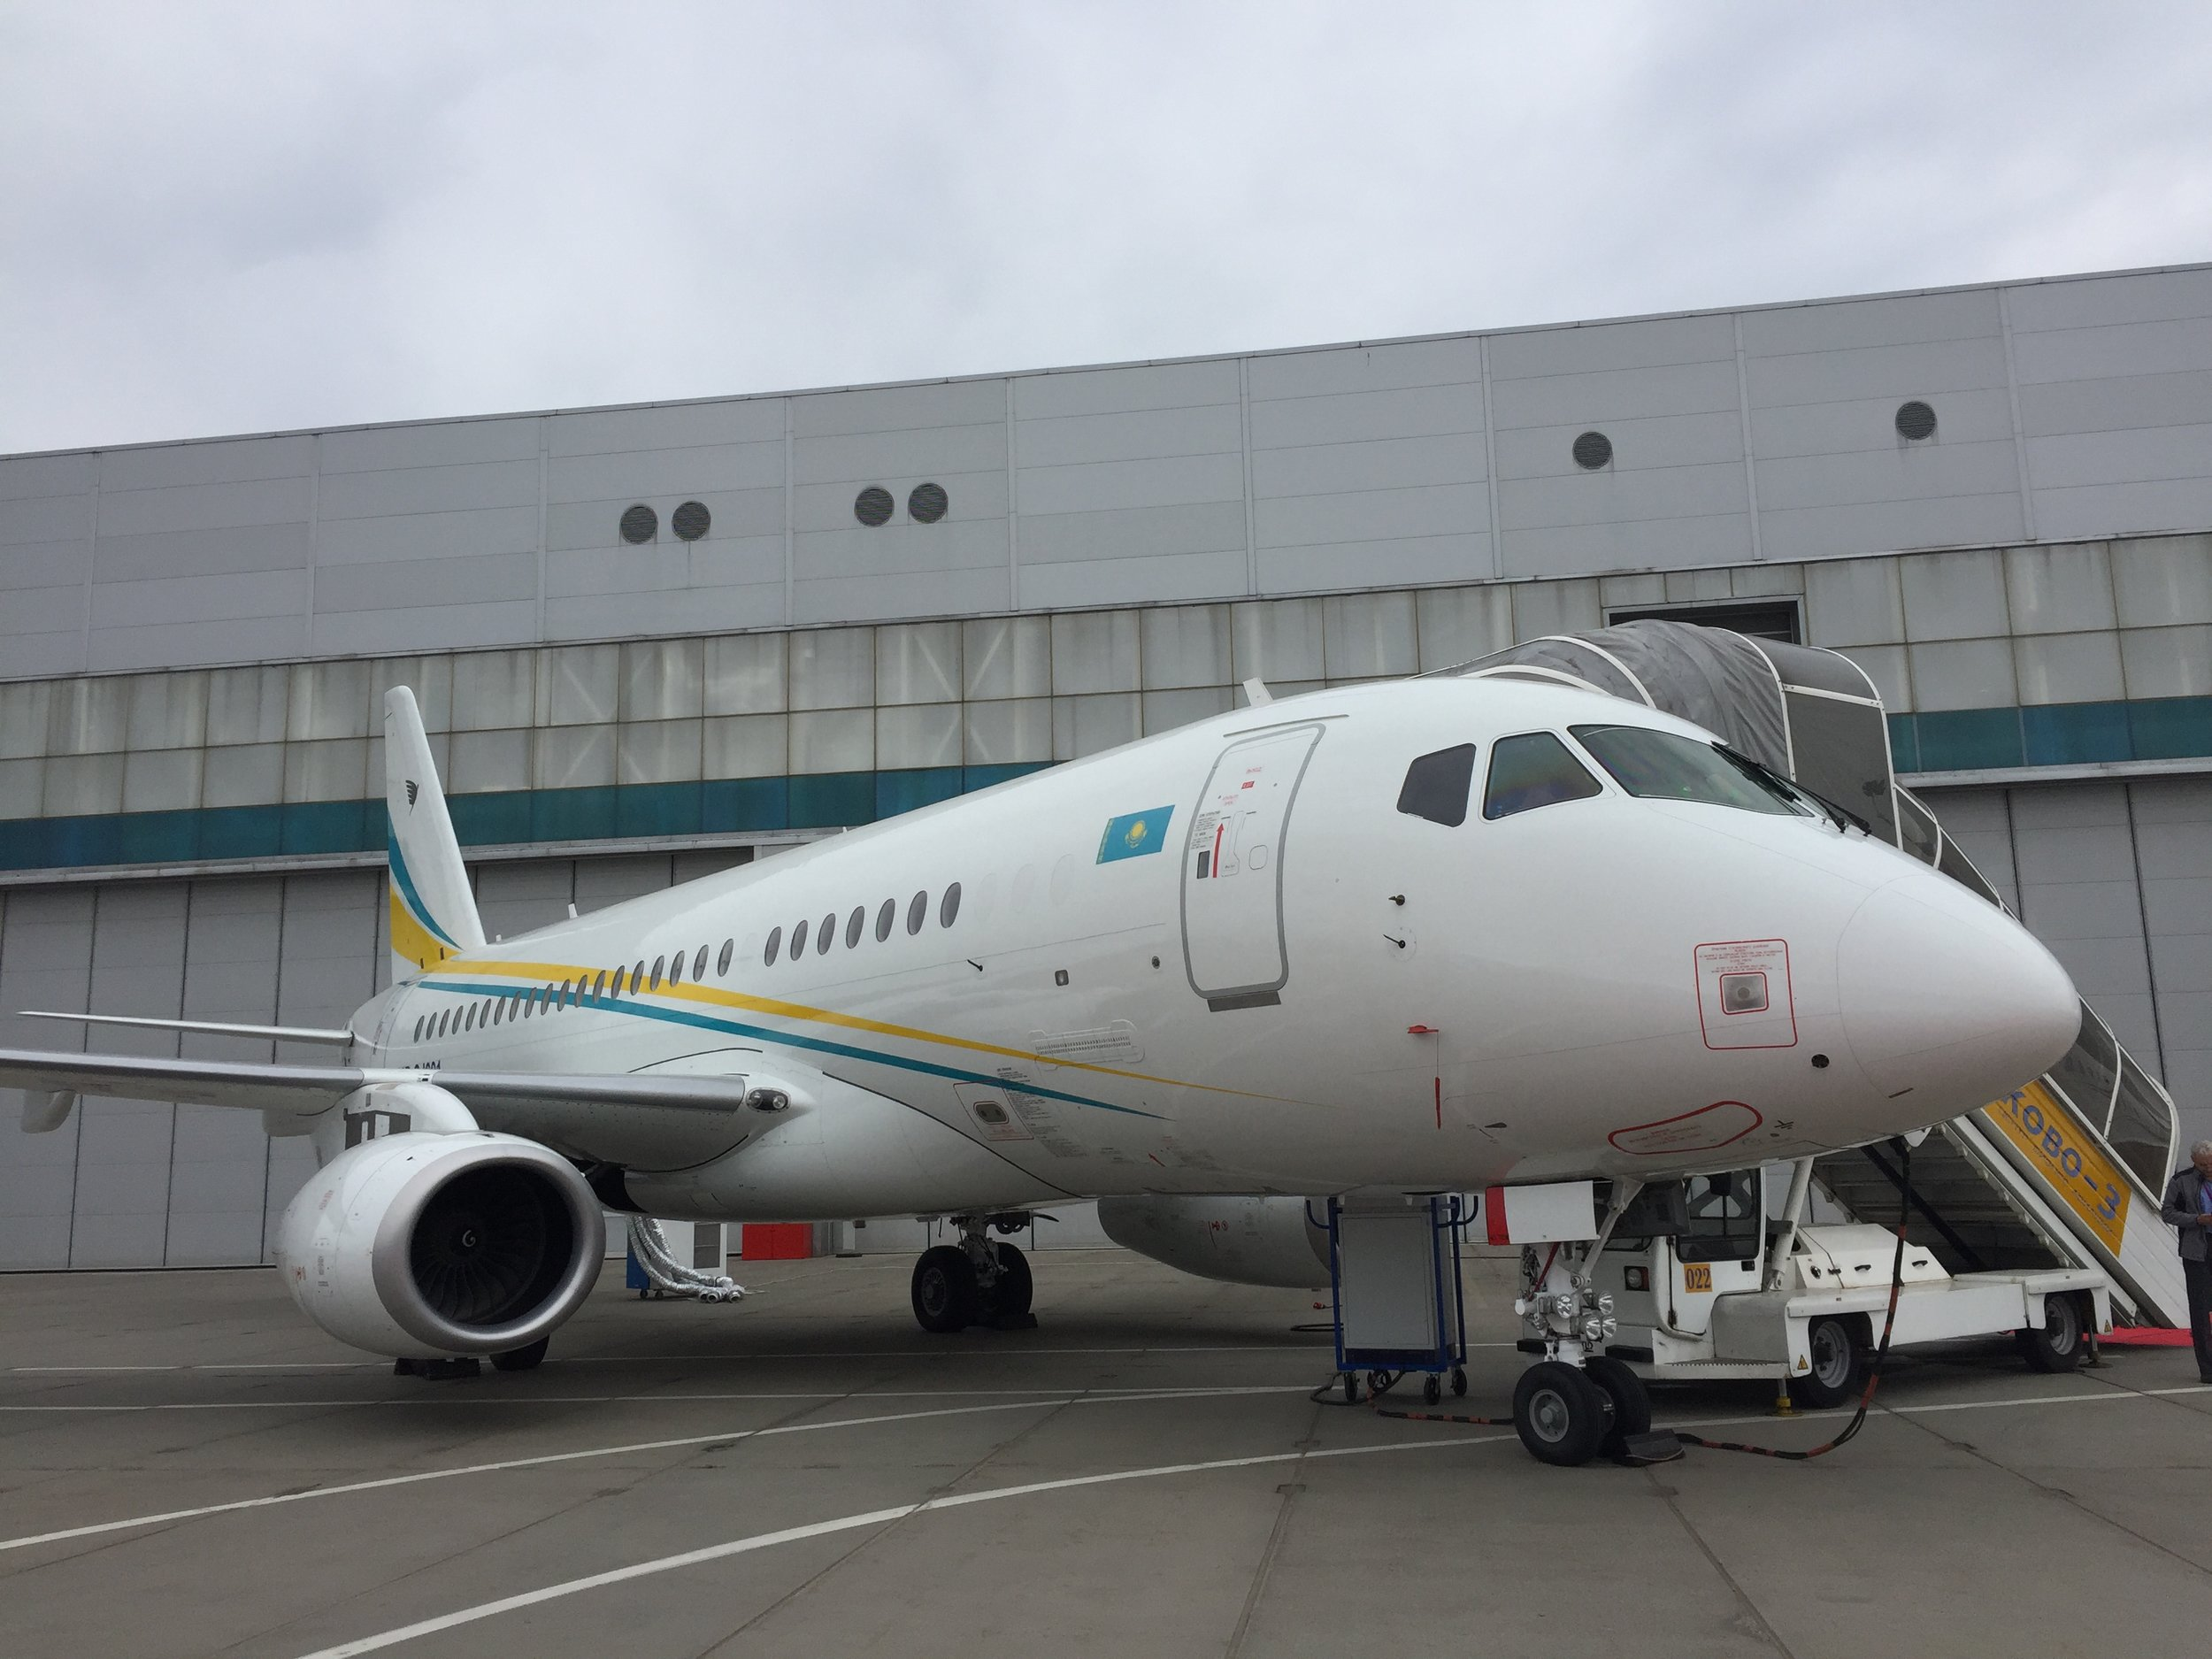 The largest jet at the show. By the way, if you are looking for a private jet, this Sukhoi Business Jet (the corporate version of the Super Jet), currently in service in Kazakstan, has been put back in the market by Comlux